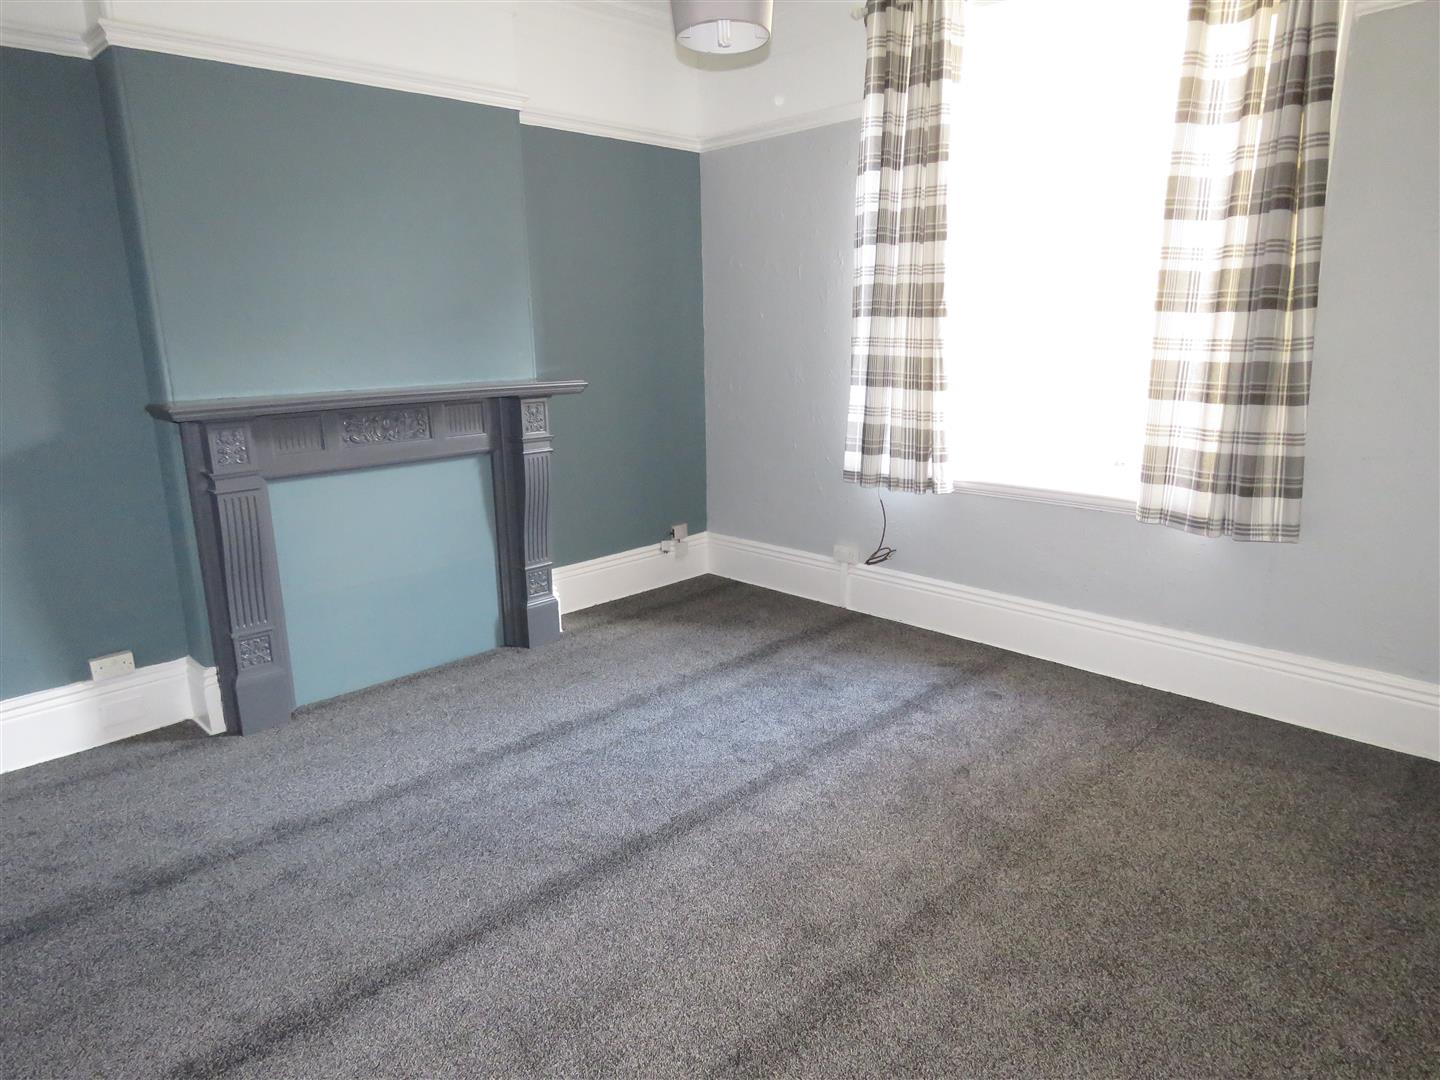 Flat 5, 22 Priory Road Nether Edge Sheffield